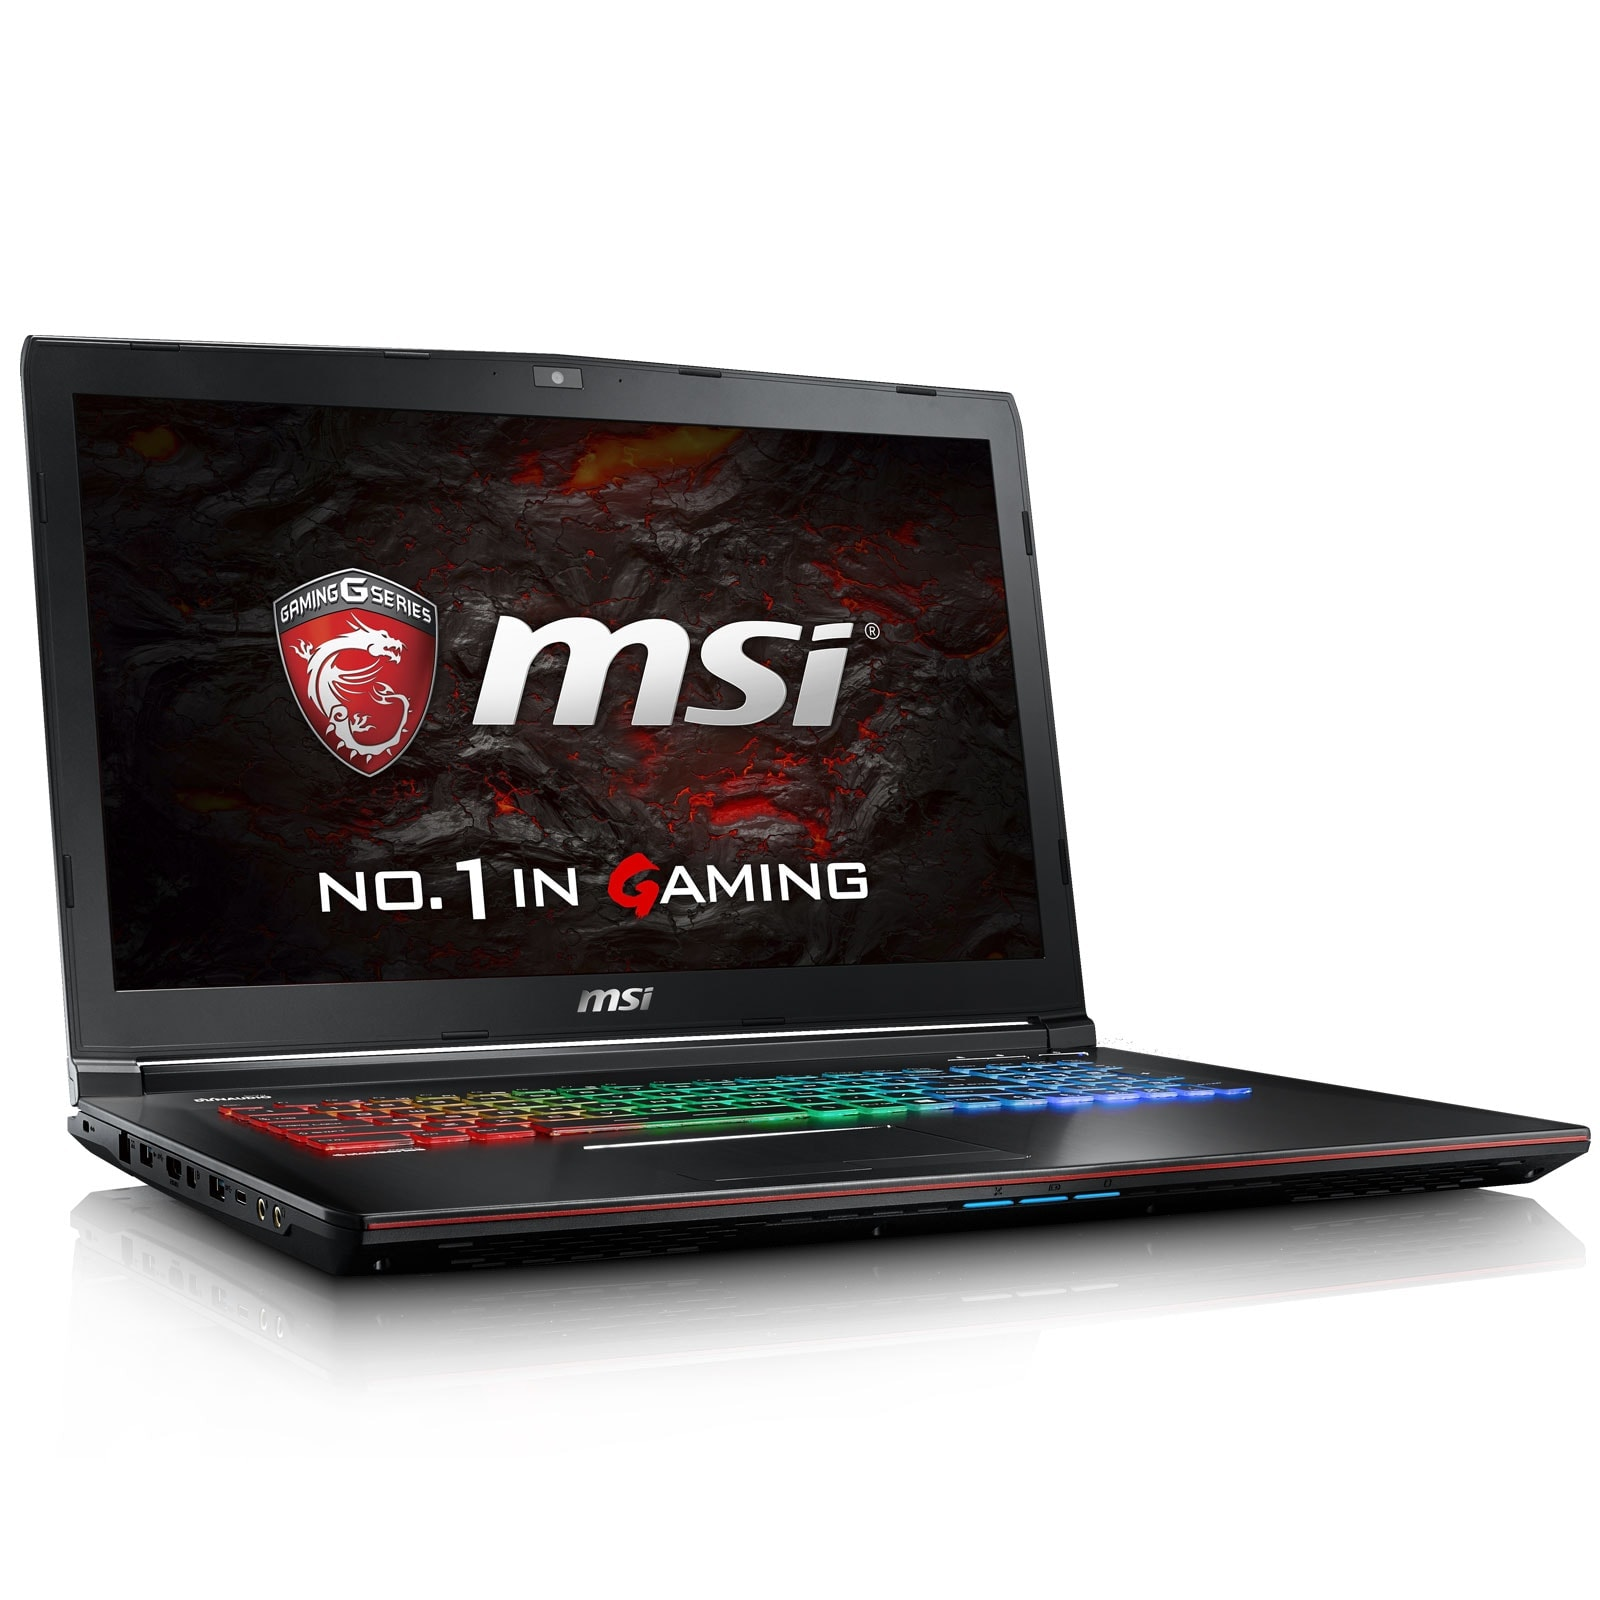 MSI 9S7-179B11-019 - PC portable MSI - Cybertek.fr - 0